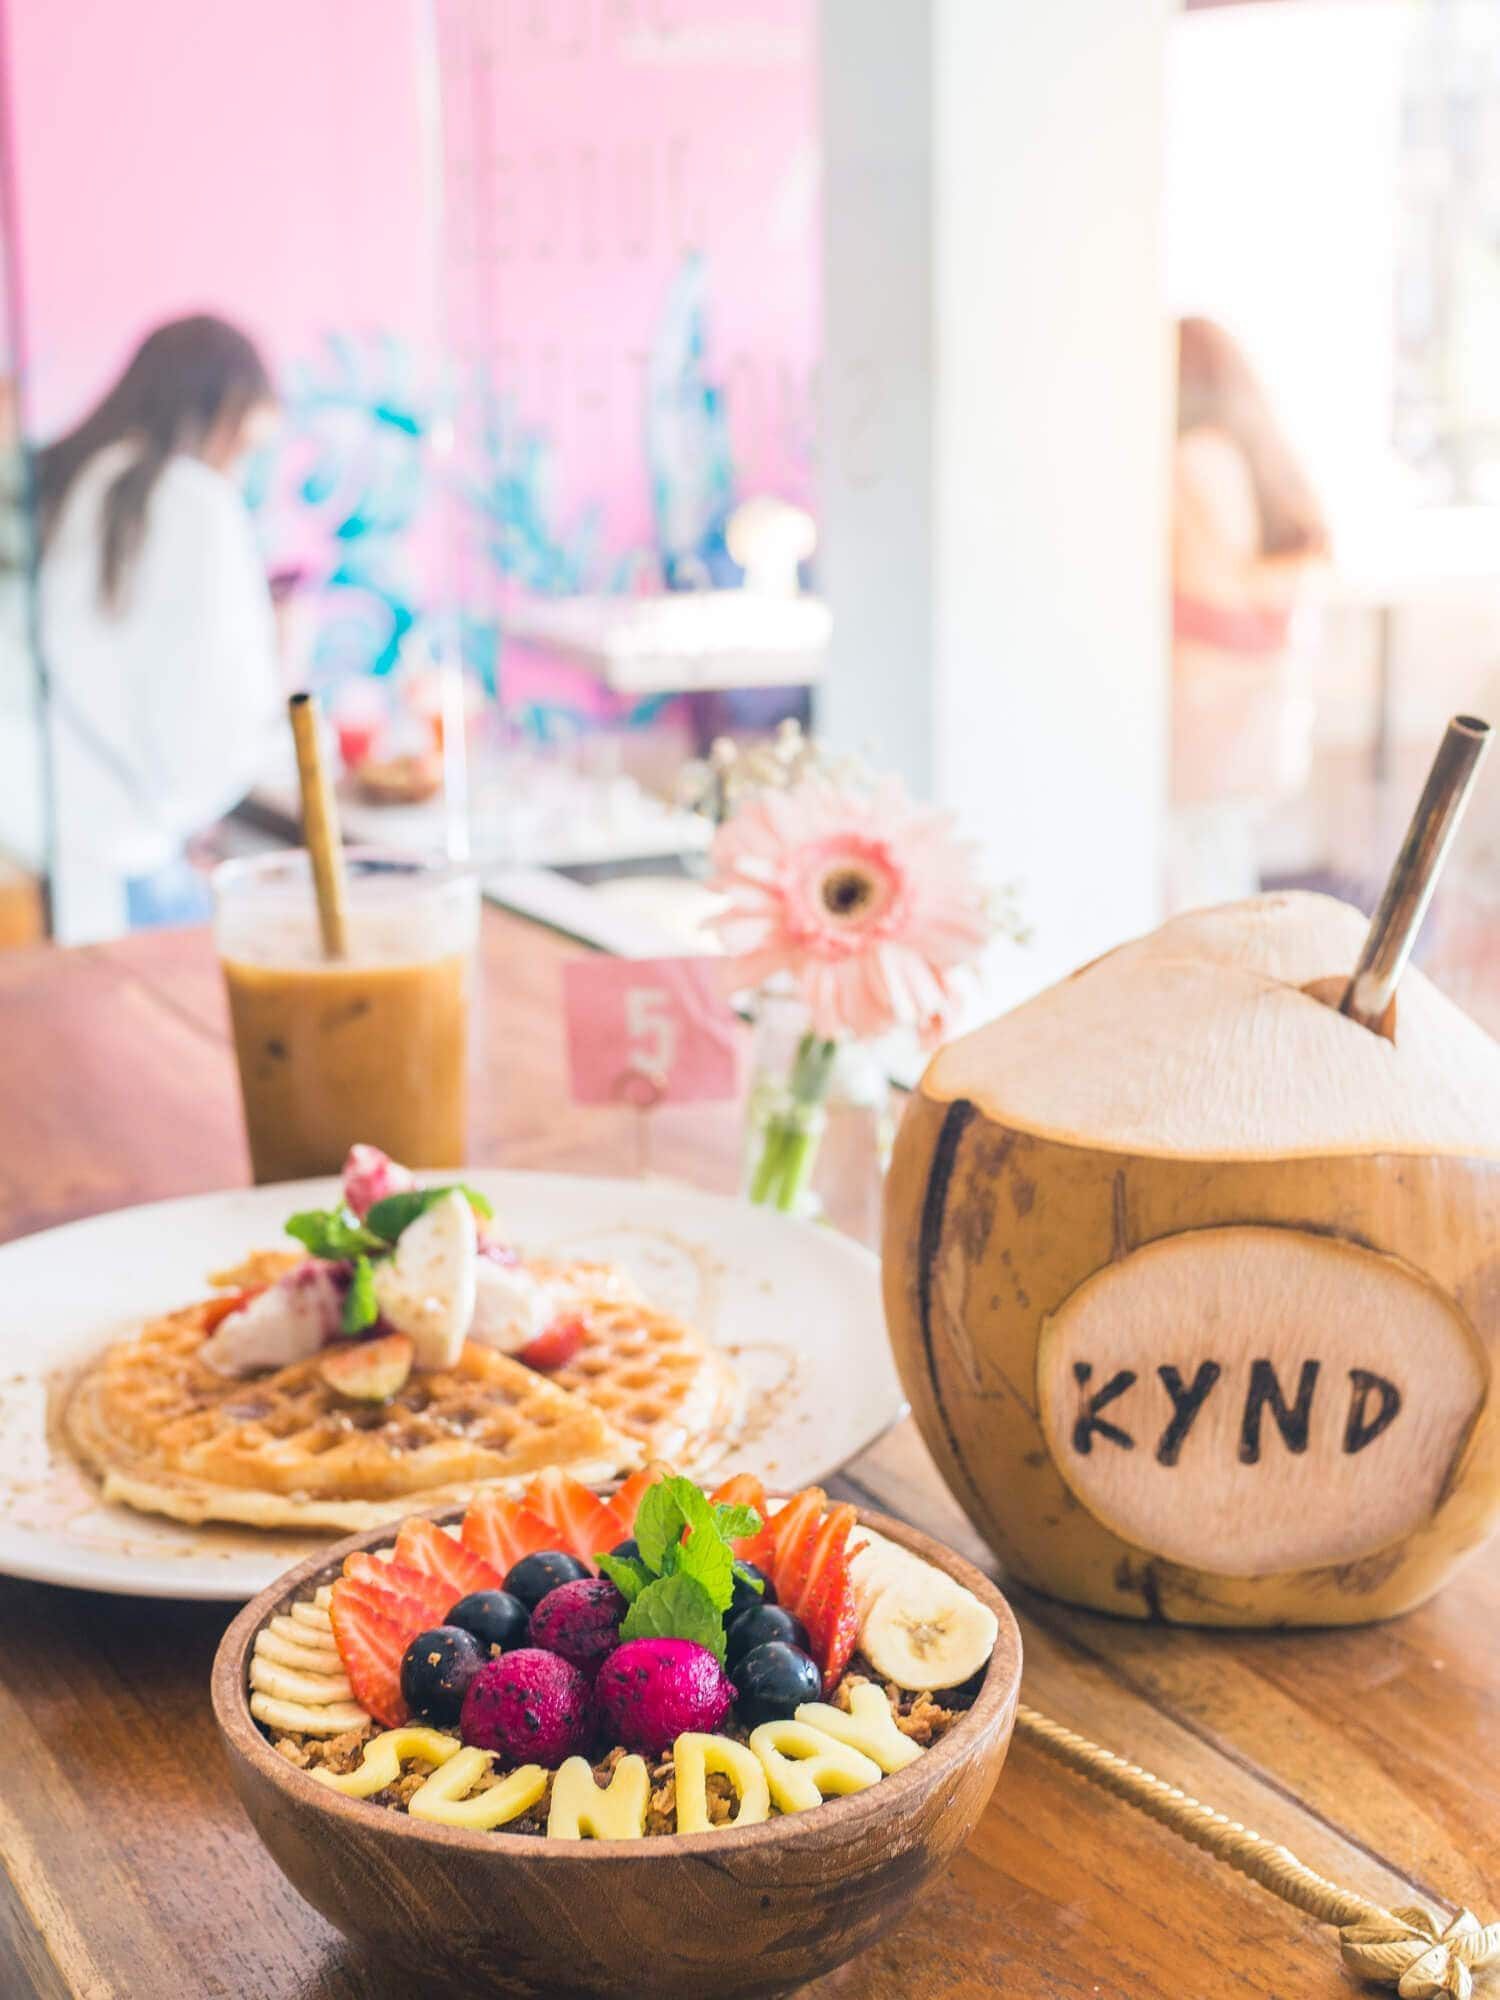 Kynd Community Café in Seminyak is the most Instagrammable restaurant in Bali - The ultimate Bali Bucket List 2018